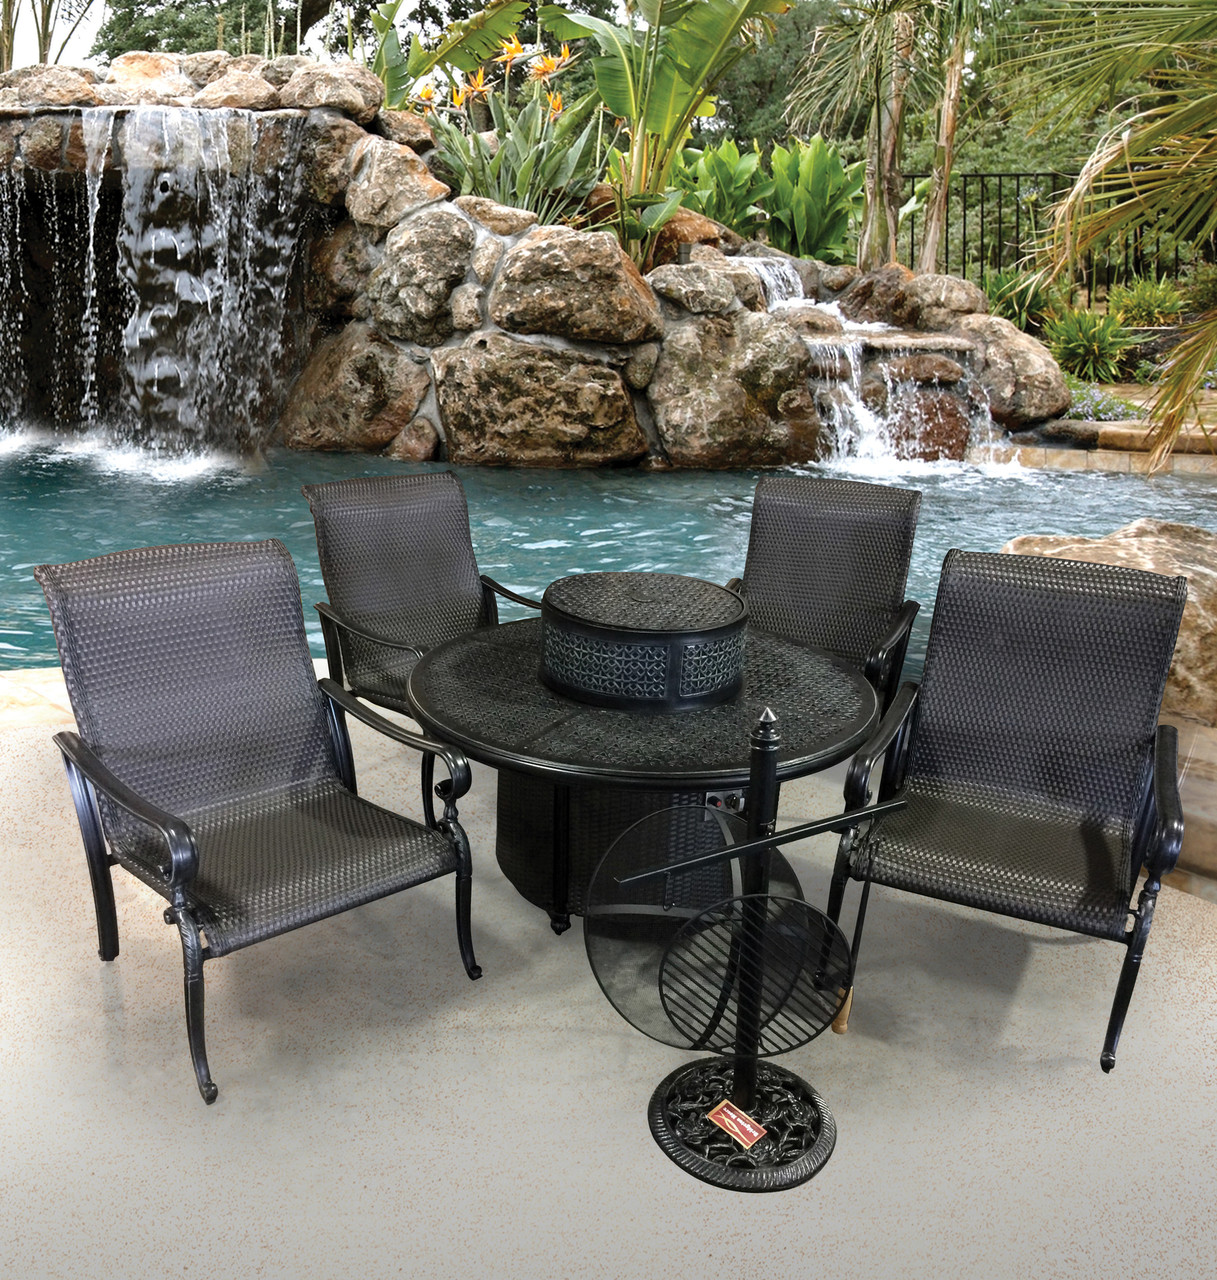 Image of: Wyndermere All Inclusive Outdoor Gas Firepit Club Table Set Kit World Of Decor